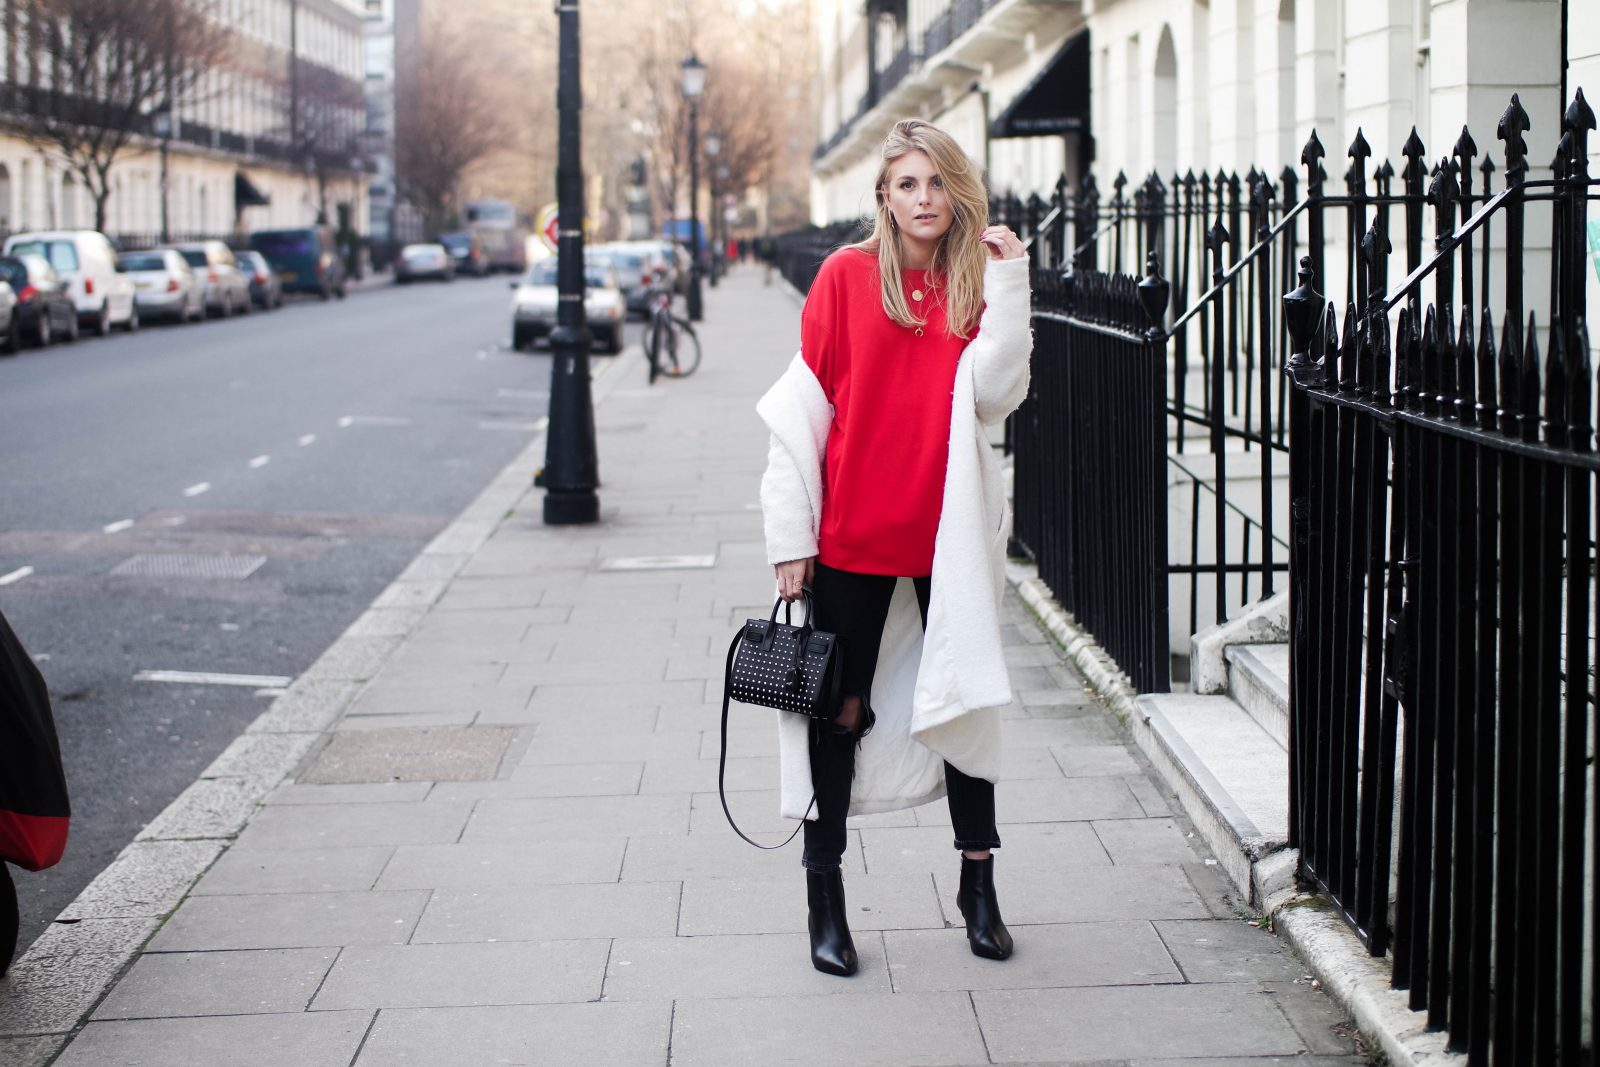 LFW DAY 2 - Red Alert - Fashion Blogger Style